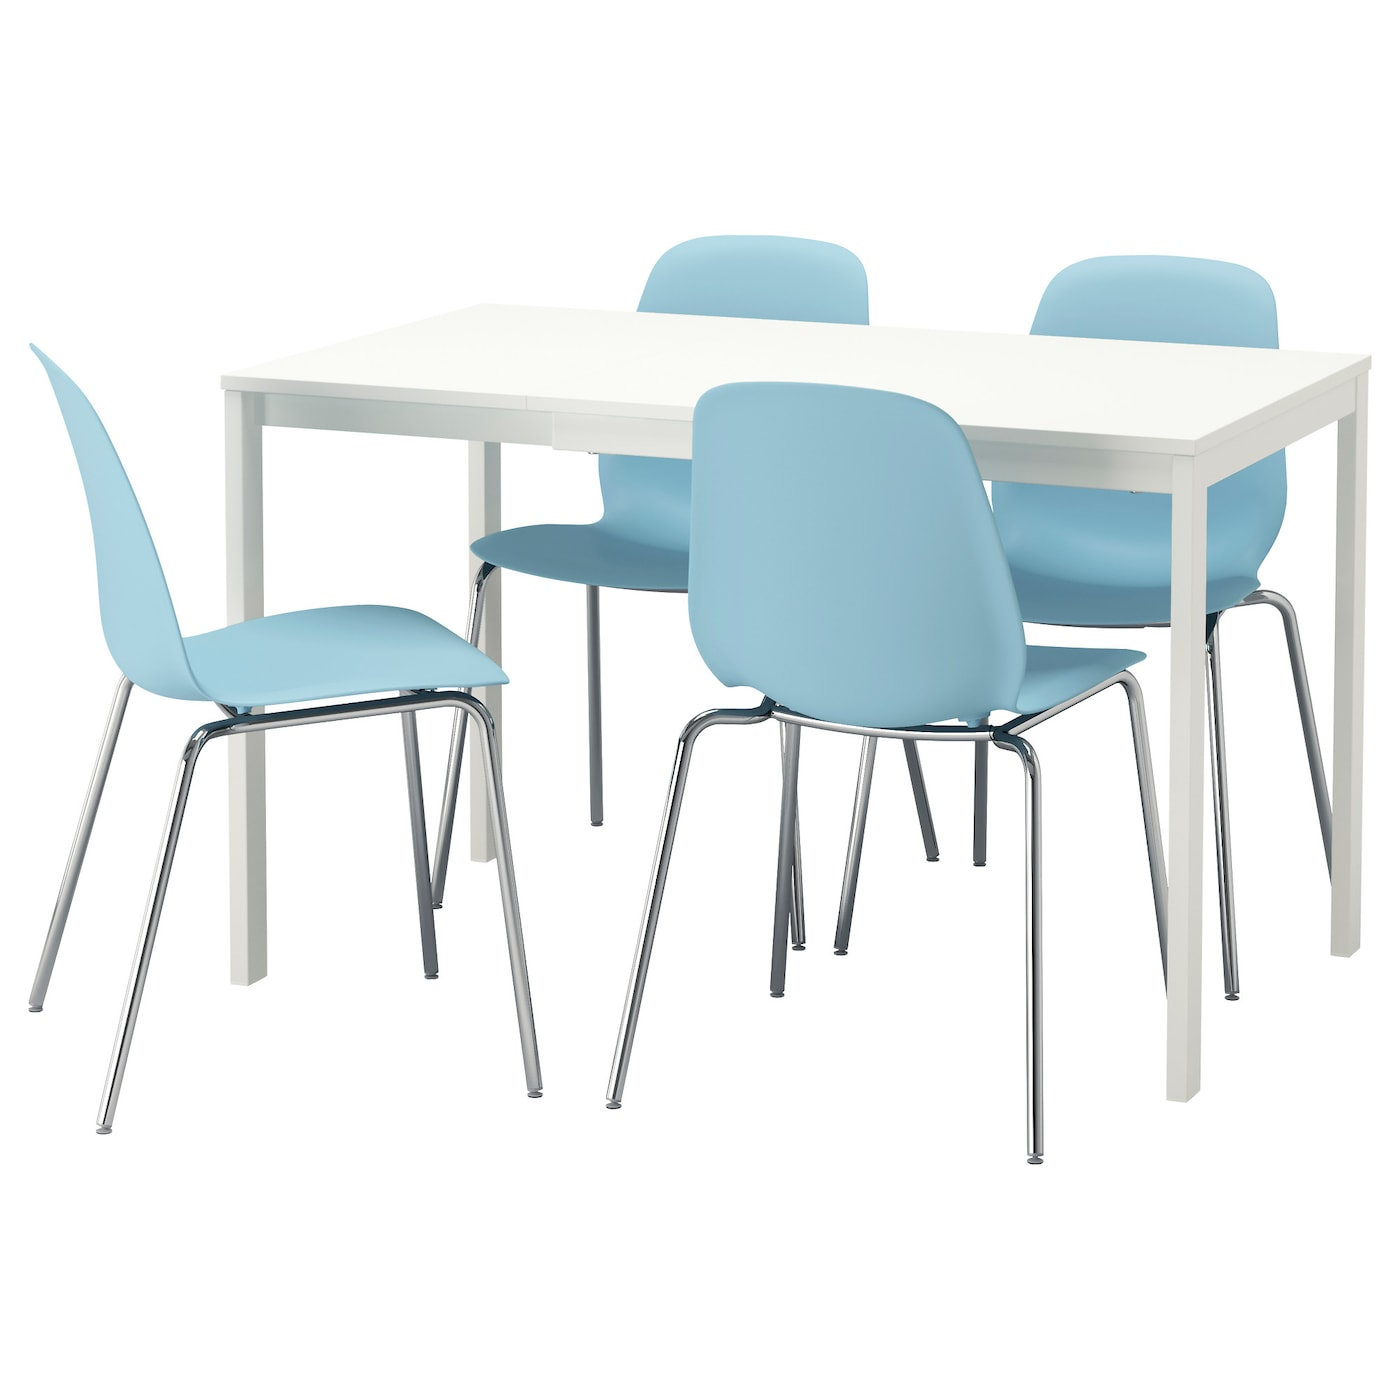 leifarne vangsta table et 4 chaises blanc bleu clair 120 180 cm ikea. Black Bedroom Furniture Sets. Home Design Ideas